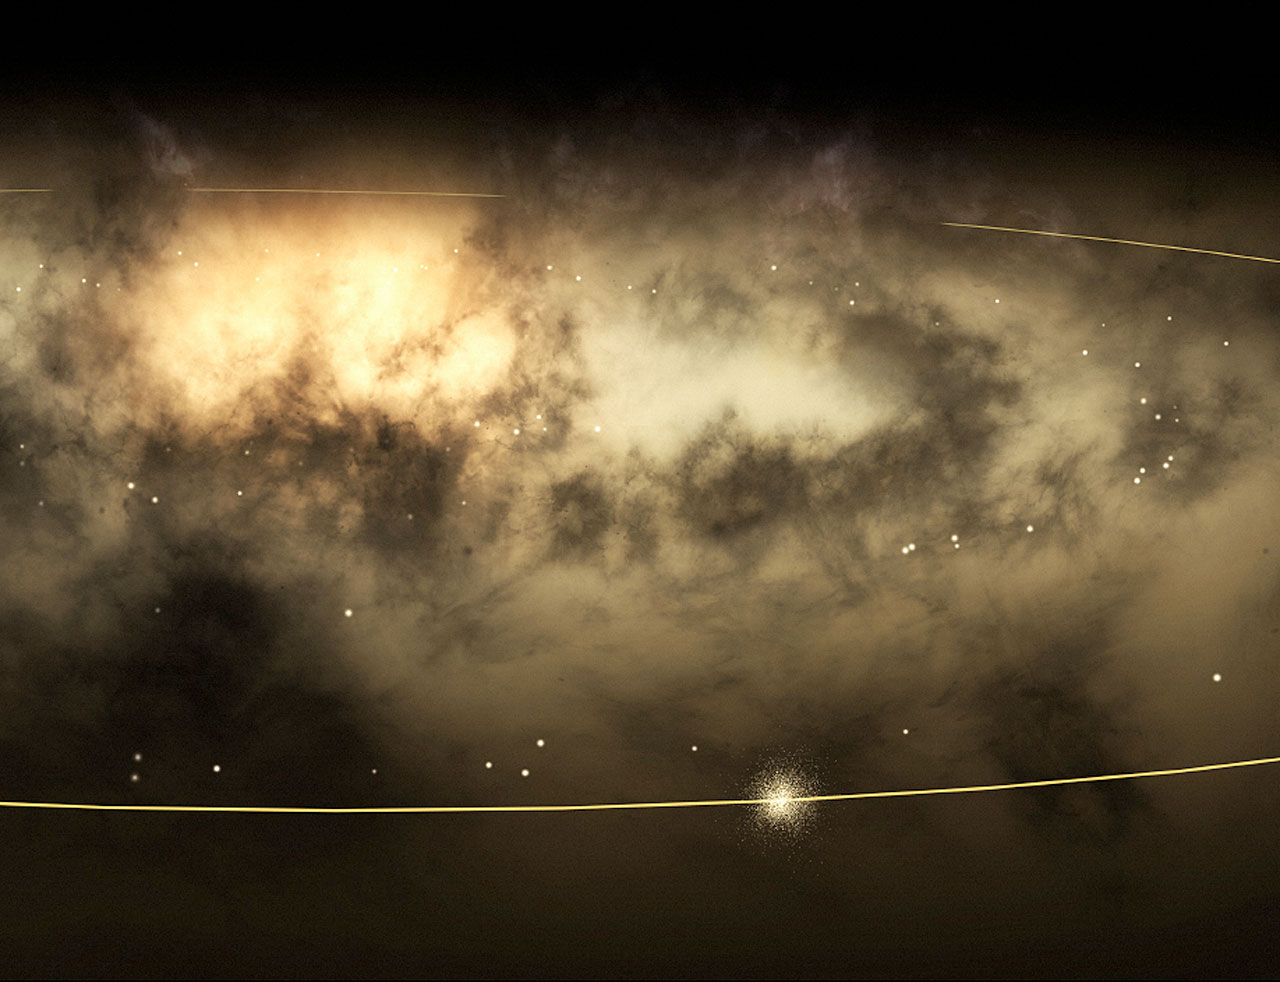 Solar Neigbourhood Stars in the Milky Way galaxy (artist's view).